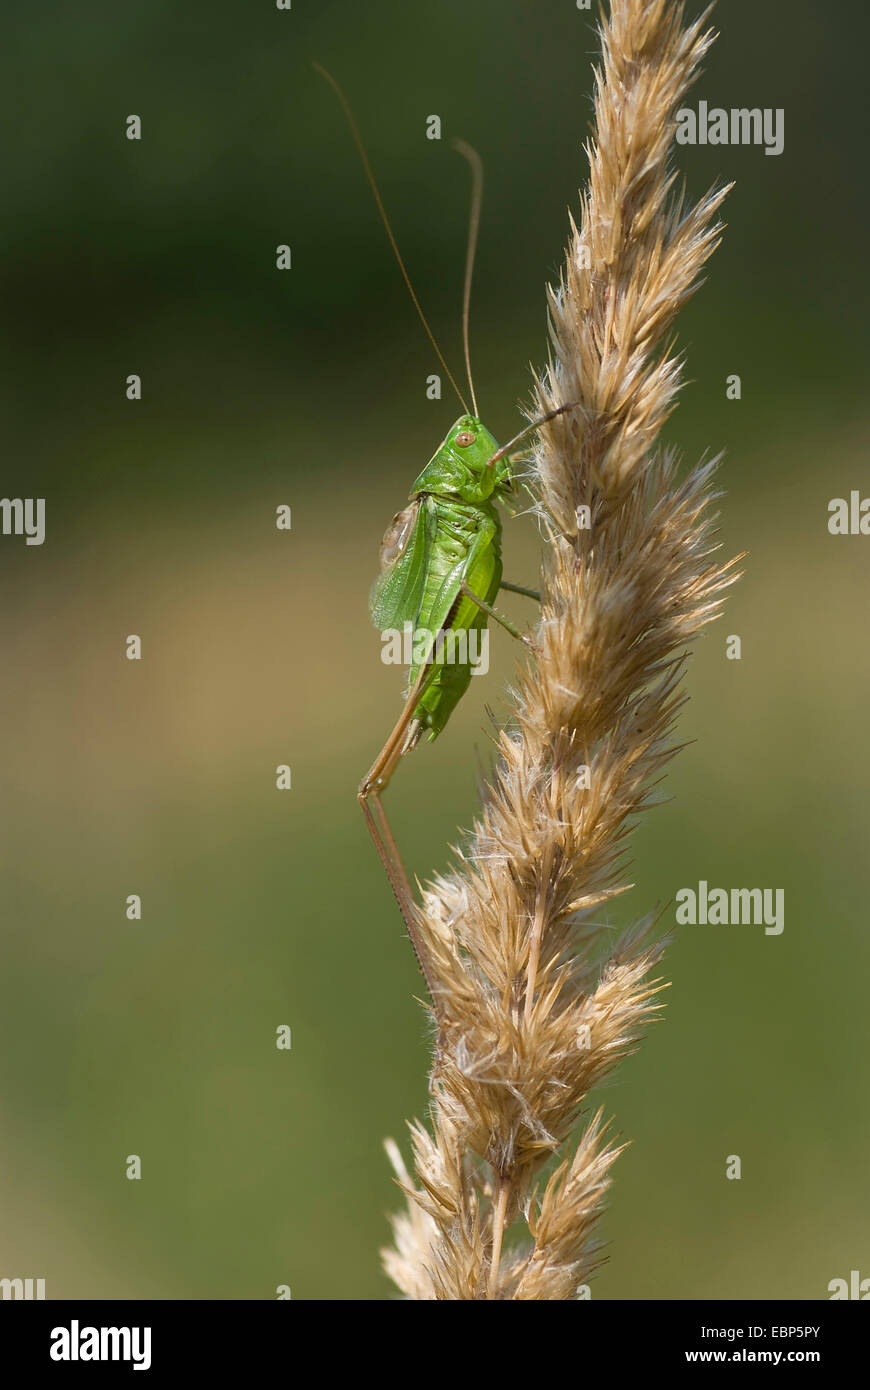 twocoloured bushcricket (Metrioptera bicolor), at a grass ear, Germany - Stock Image